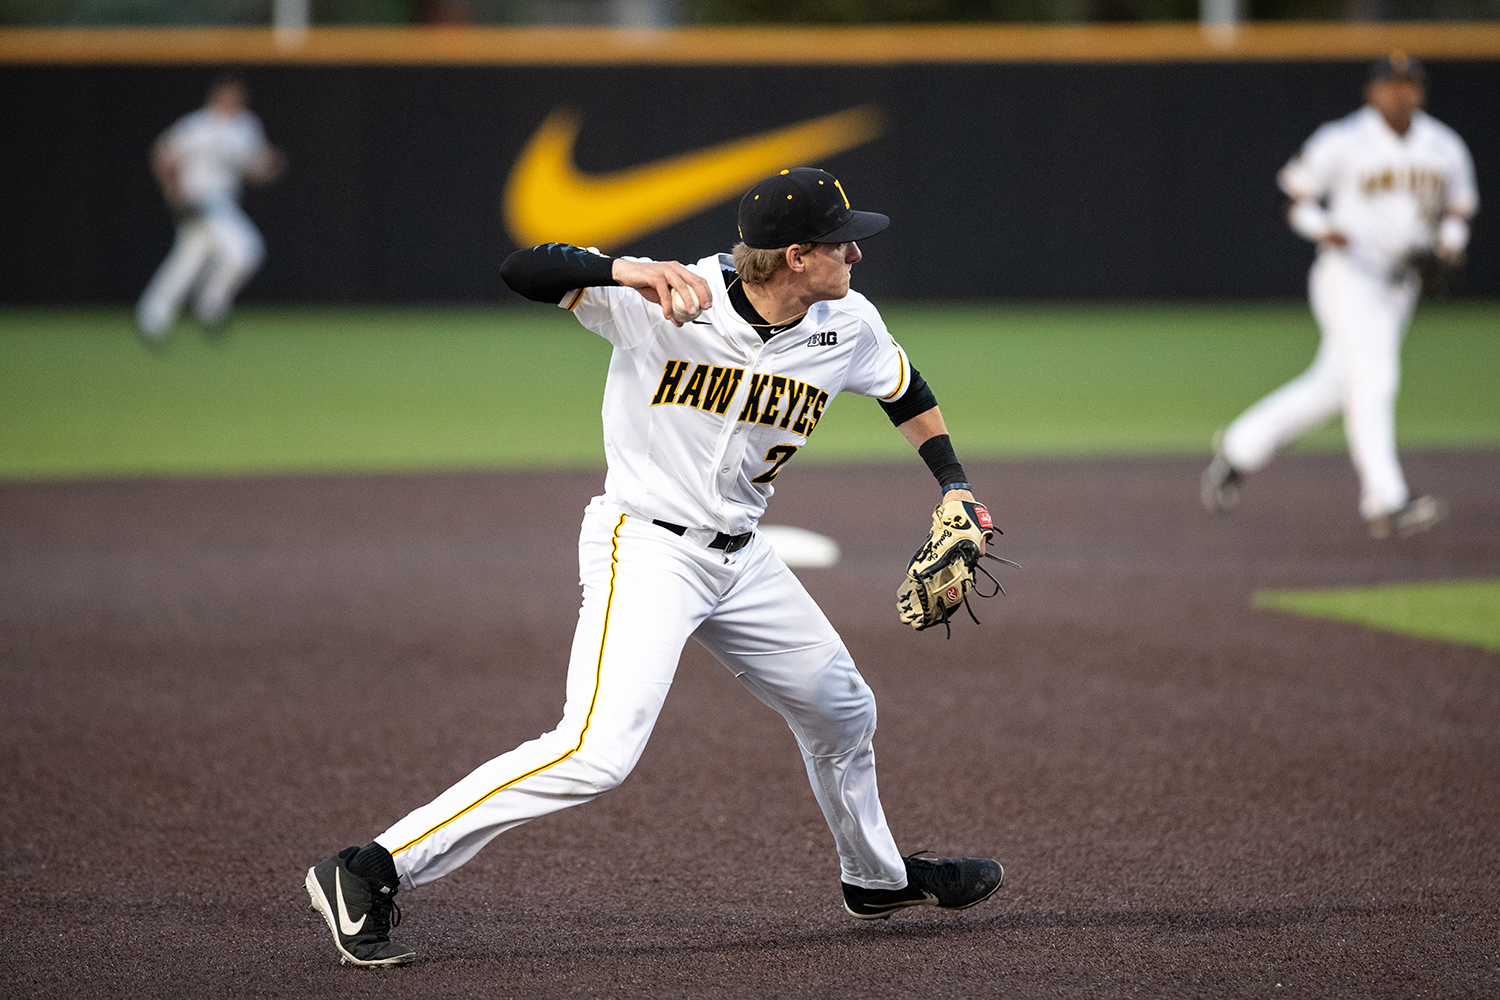 Iowa infielder Brendan Sher throws towards first base during the baseball game against Milwaukee at Duane BanksField on Tuesday, April 23, 2019. The Hawkeyes defeated the Panthers 5-4.